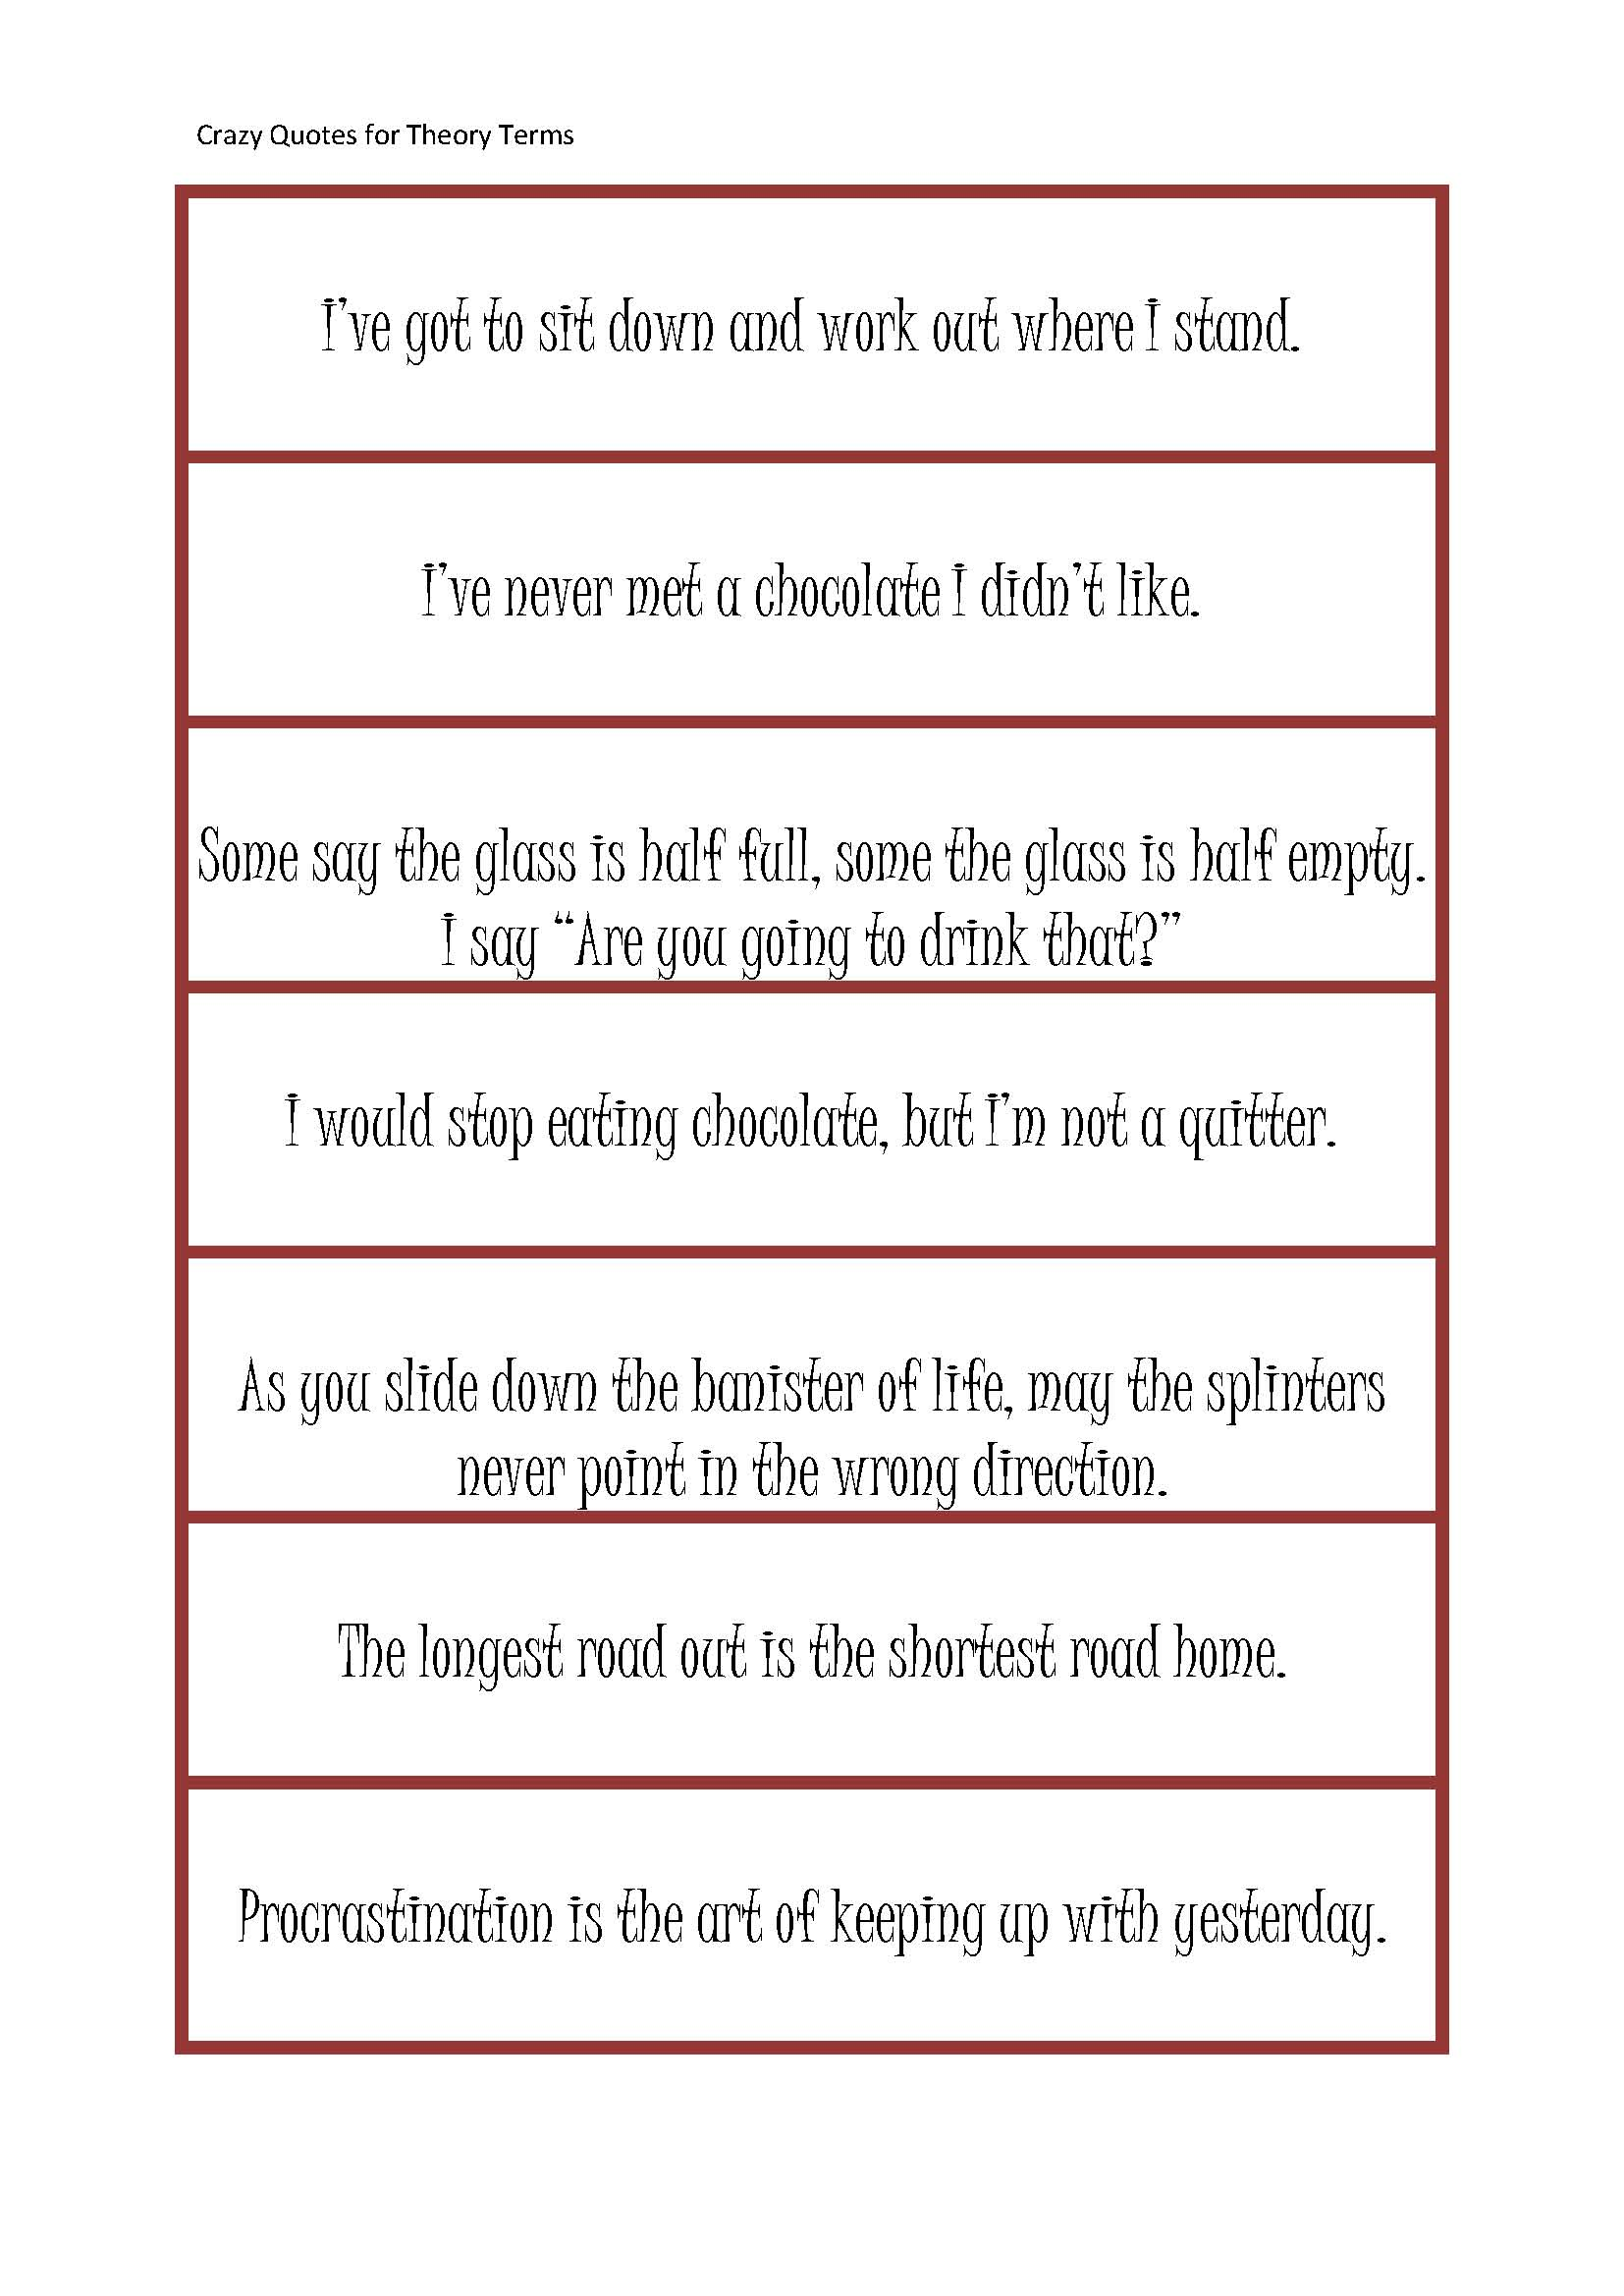 First Grade Theory Terms Game Crazy Quotes For Theory Terms Page 1